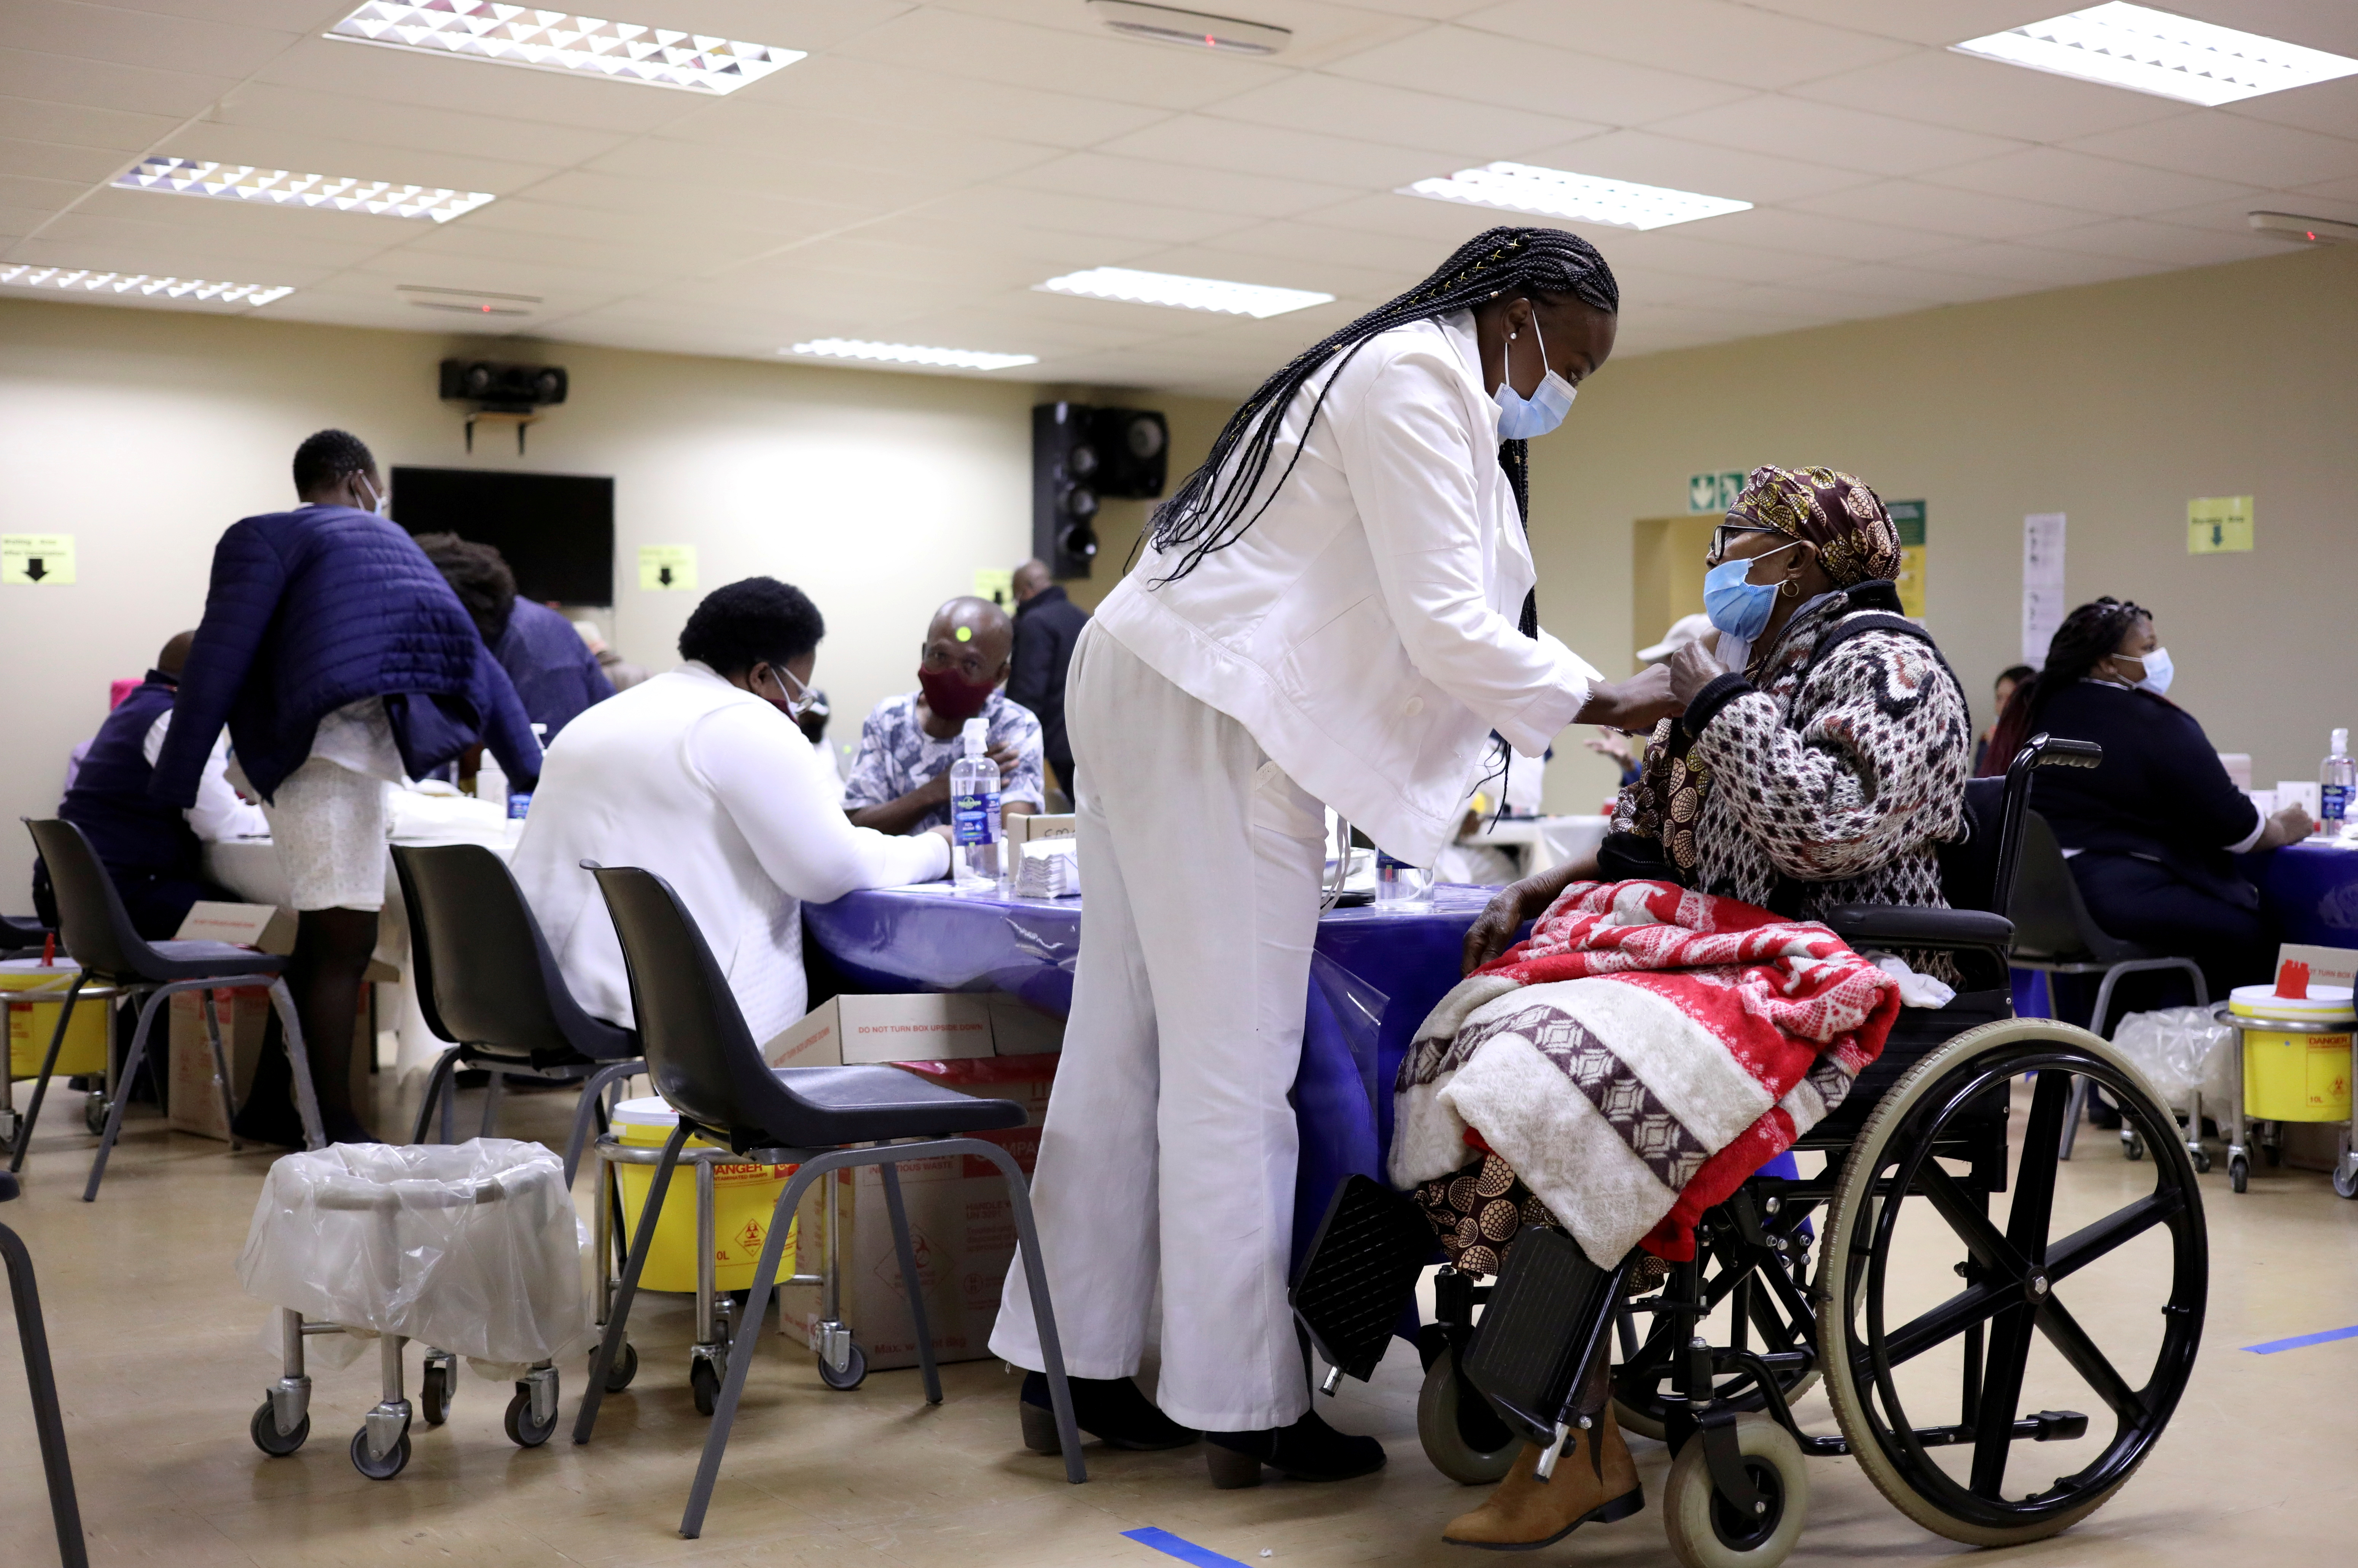 EU to invest 1 billion euros to build vaccine production hubs in Africa